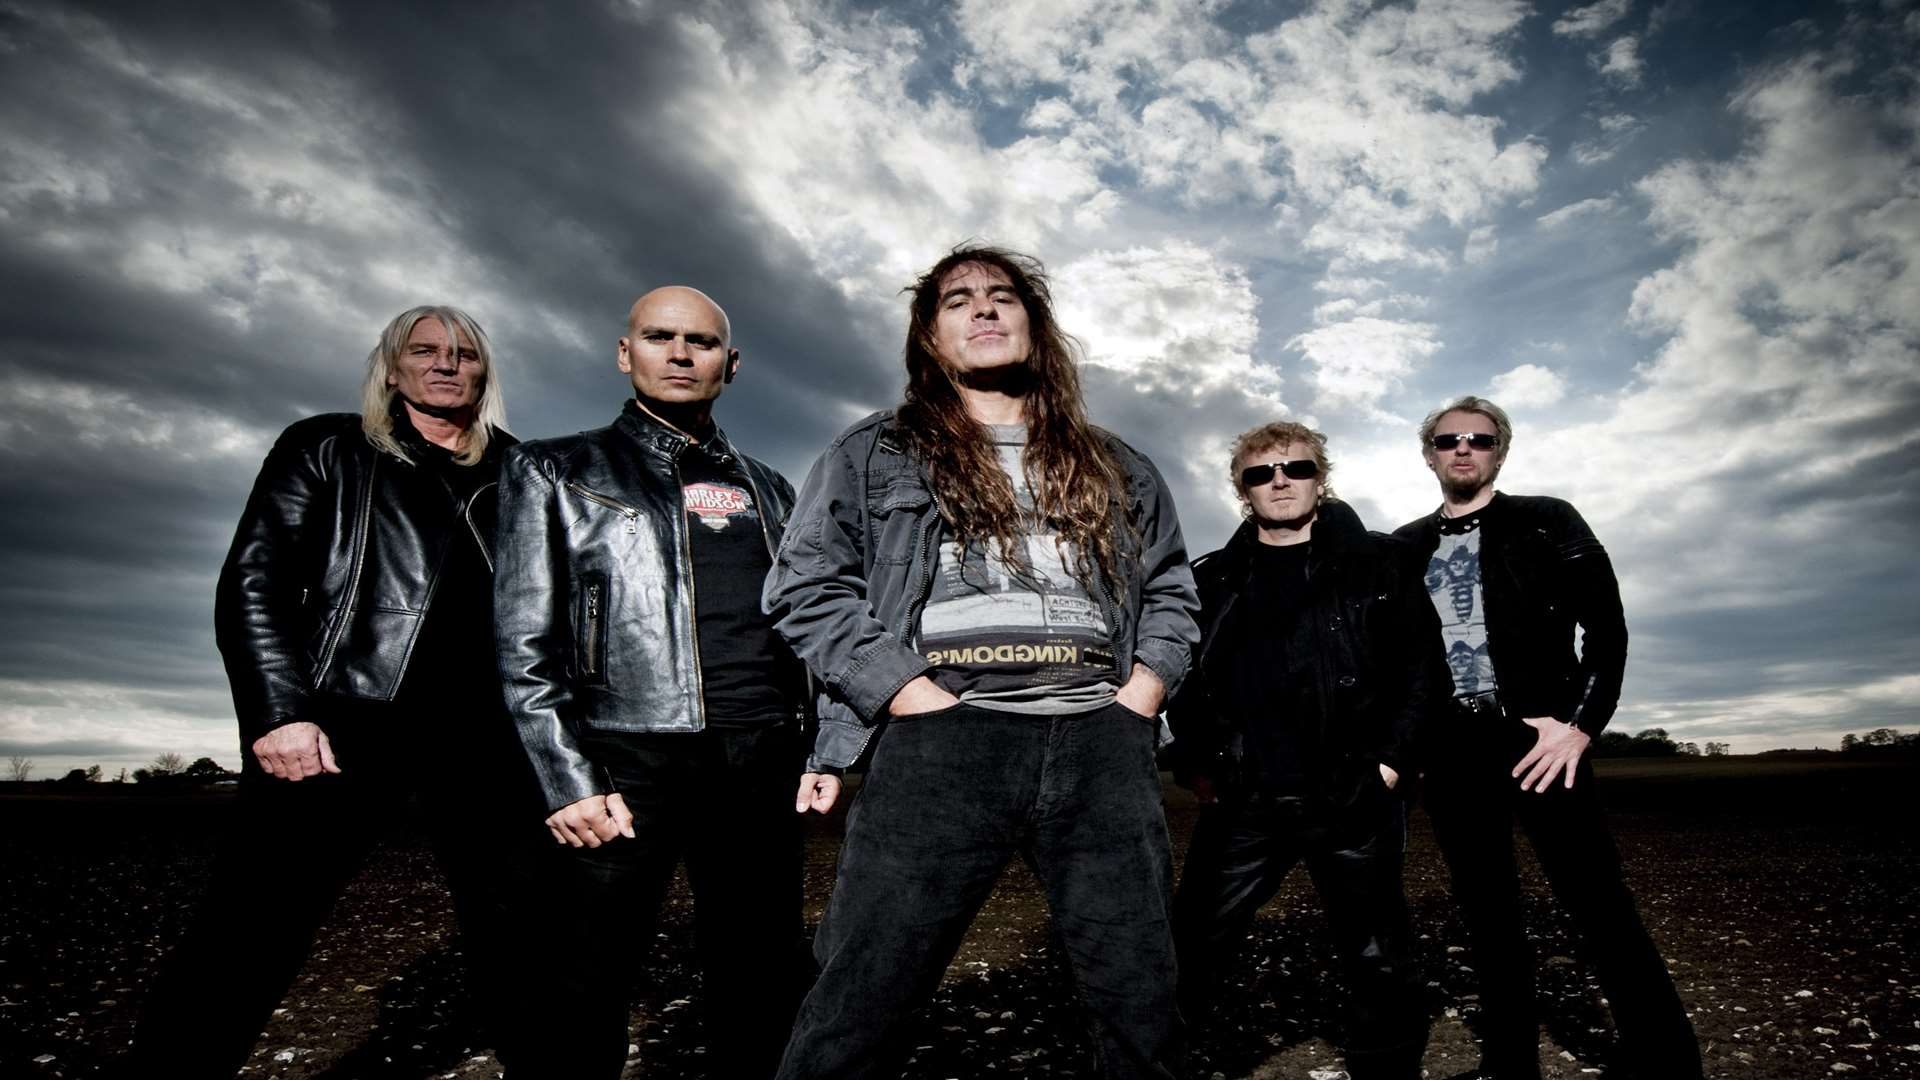 British Lion, led by Steve Harris from Iron Maiden